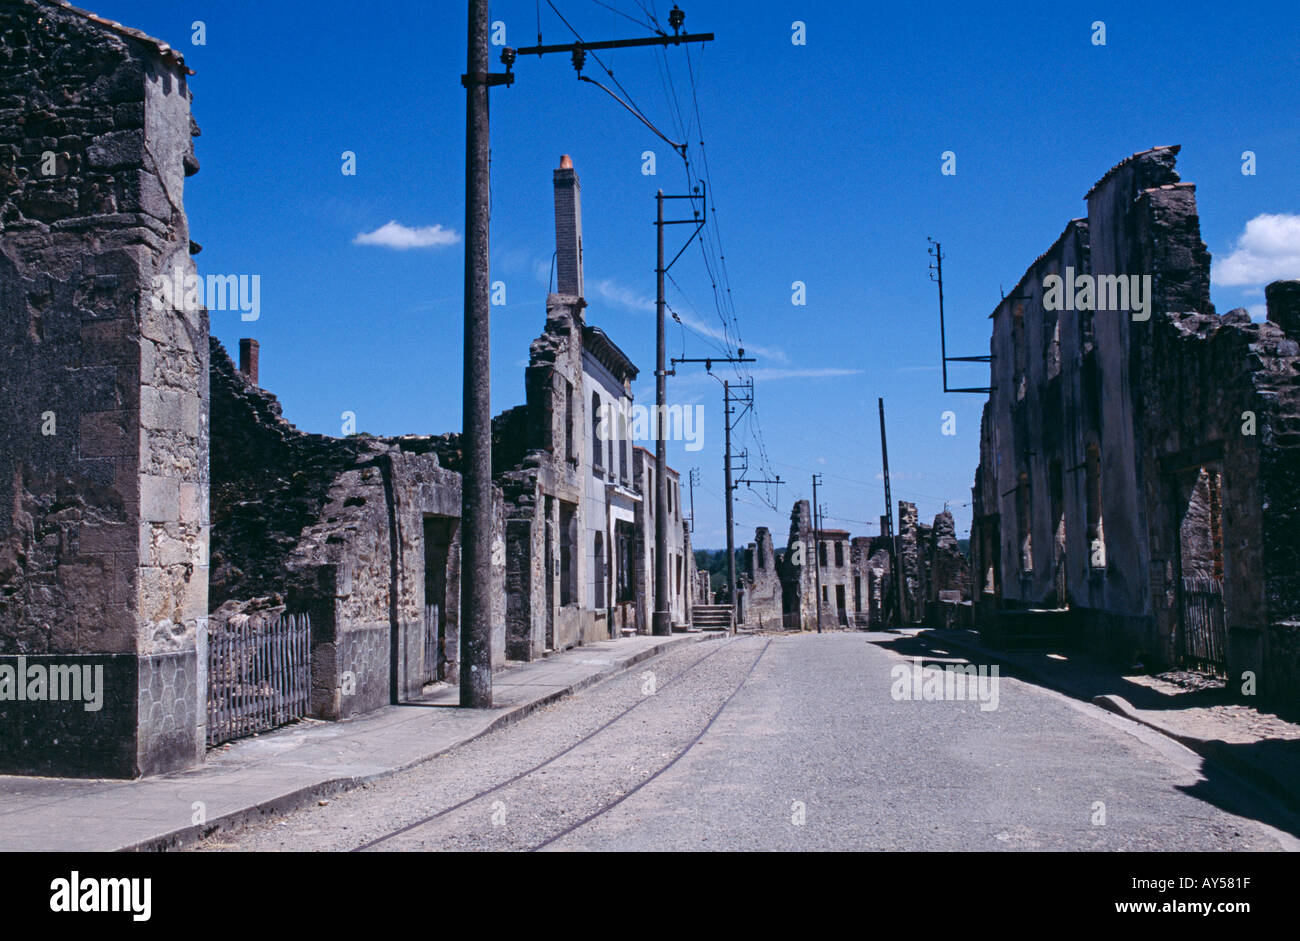 The preserved ruins of Oradour sur Glane where on 10 June 1944 soldiers of the SS Das Reich Division massacred 642 people - Stock Image